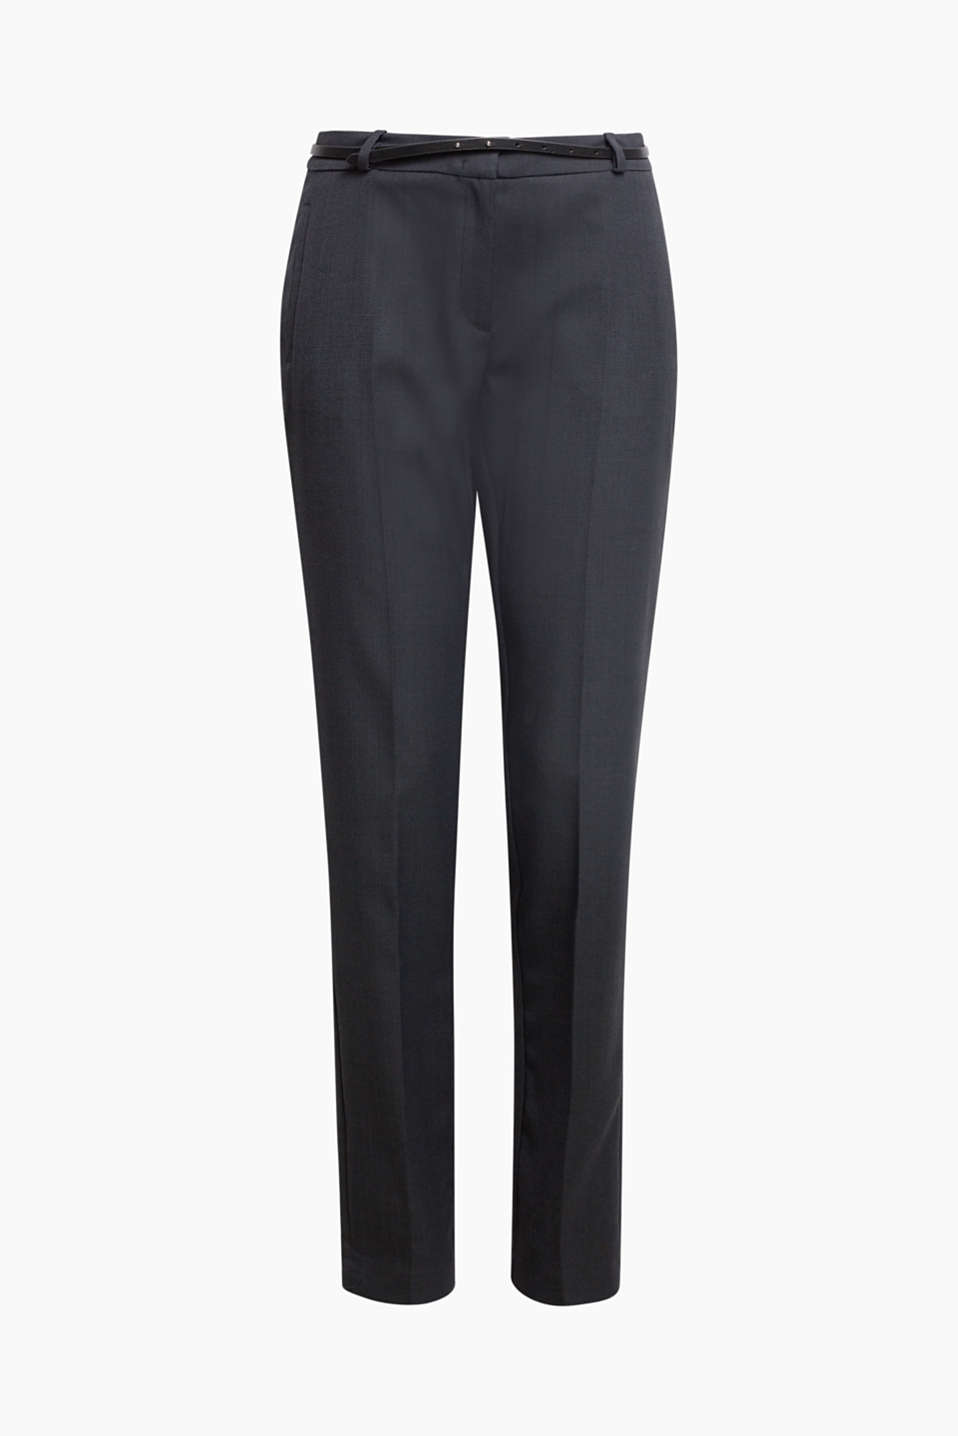 Suit trousers made of classic classic blended poly/viscose (fabric) in a fine two-tone look